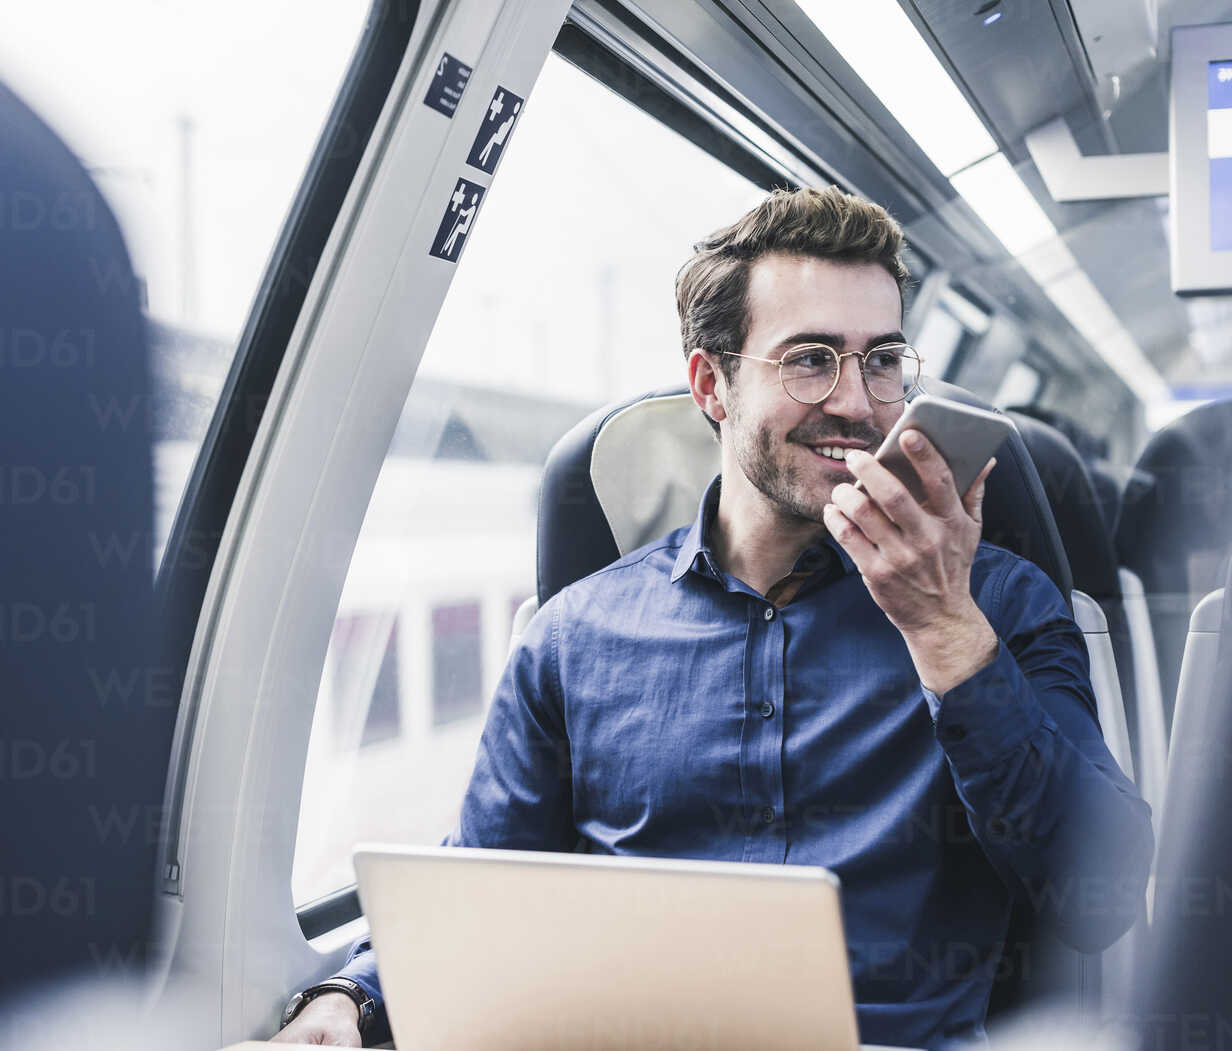 Smiling businessman in train using cell phone - UUF12632 - Uwe Umstätter/Westend61